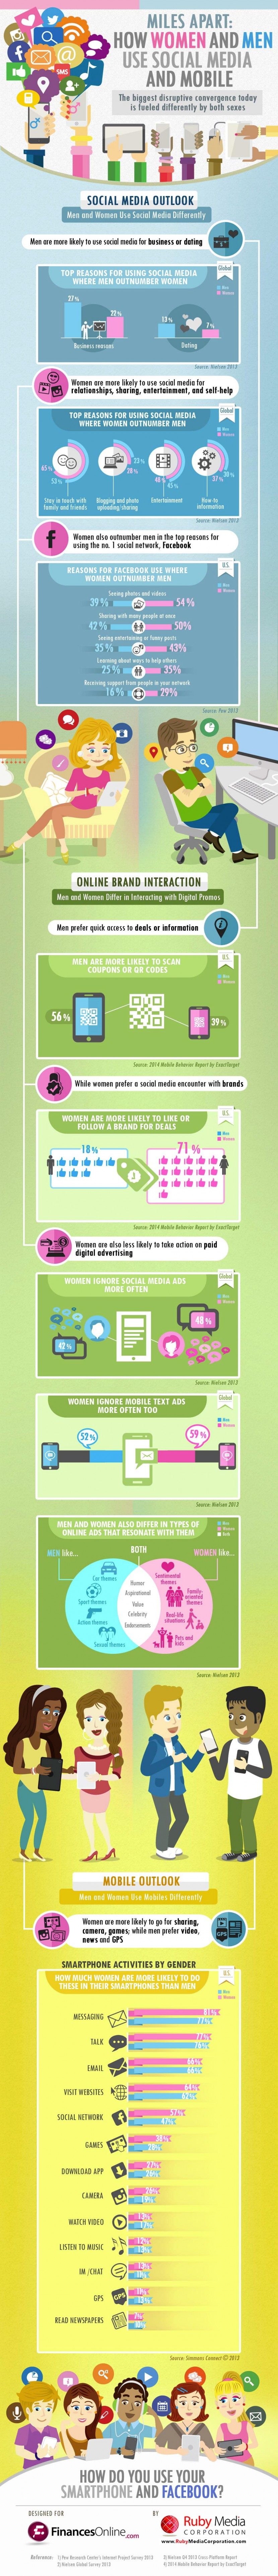 Infographie 106 -how-men-women-social-media-differently-infographic